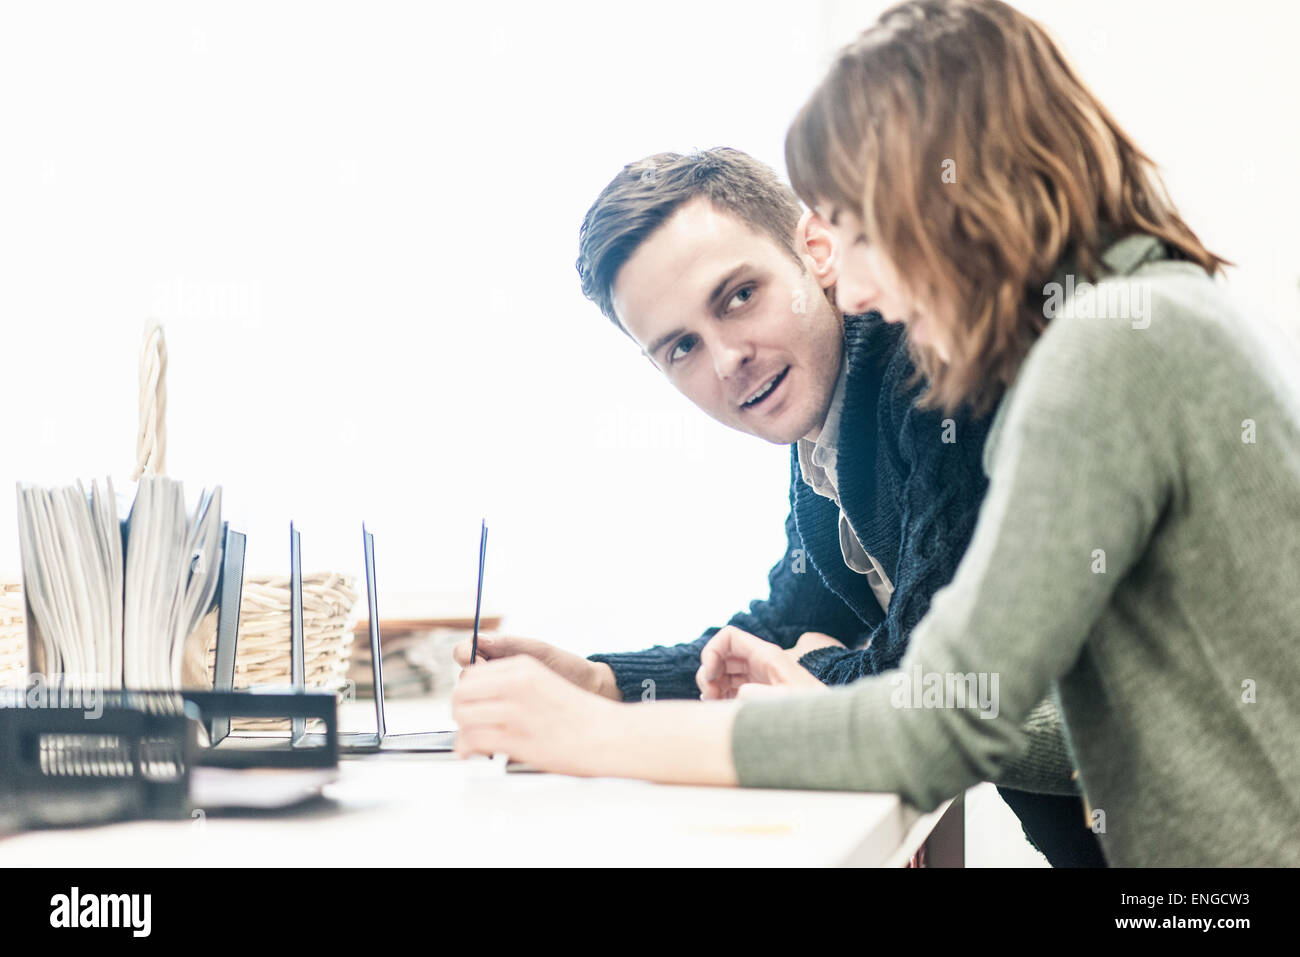 A man and a woman seated side by side talking at a desk in an office. - Stock Image